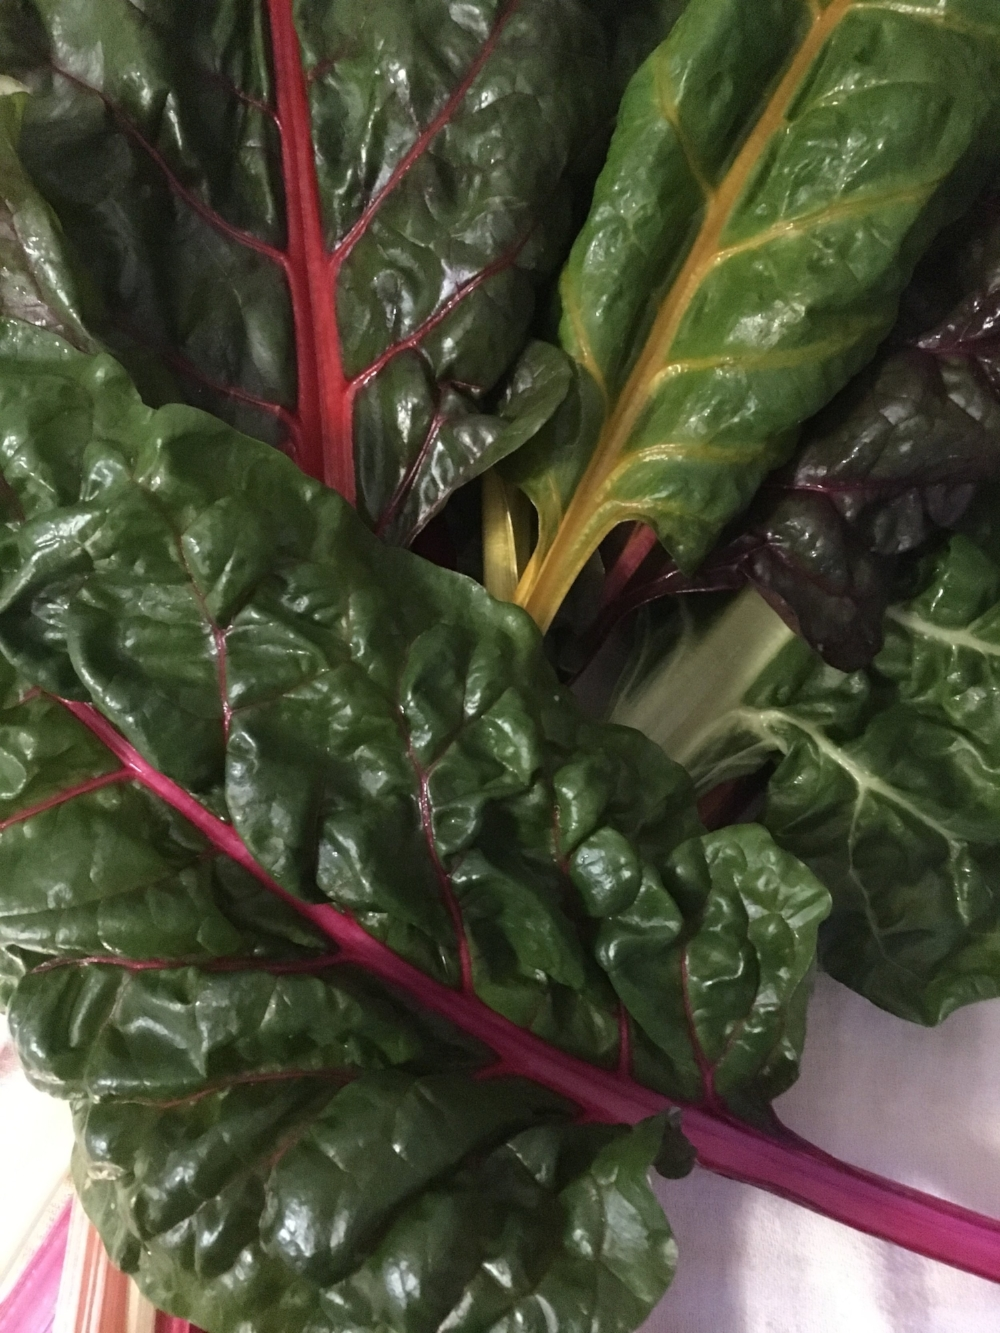 Skies have been stormy but our breakfast plates are bright with organic rainbow chard. Thank you, Portland Farmers Market and Maine farmers!